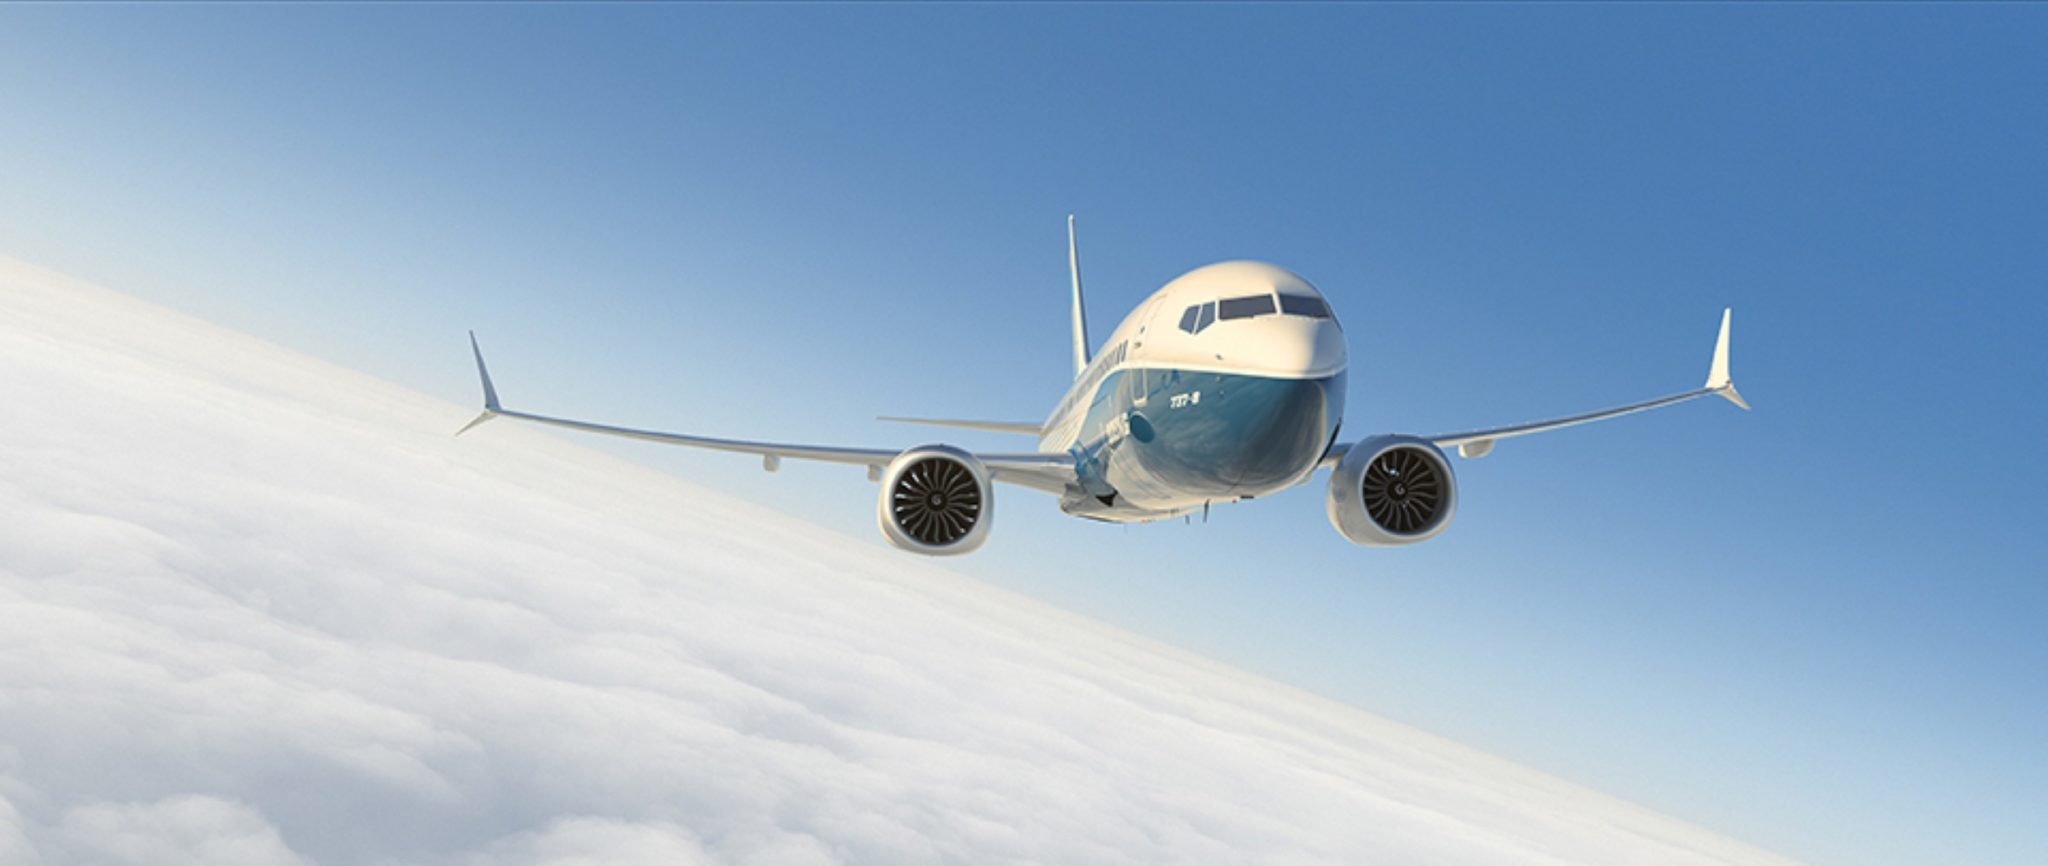 Opinion: Boeing must give maximum assurance on 737 MAX airworthiness